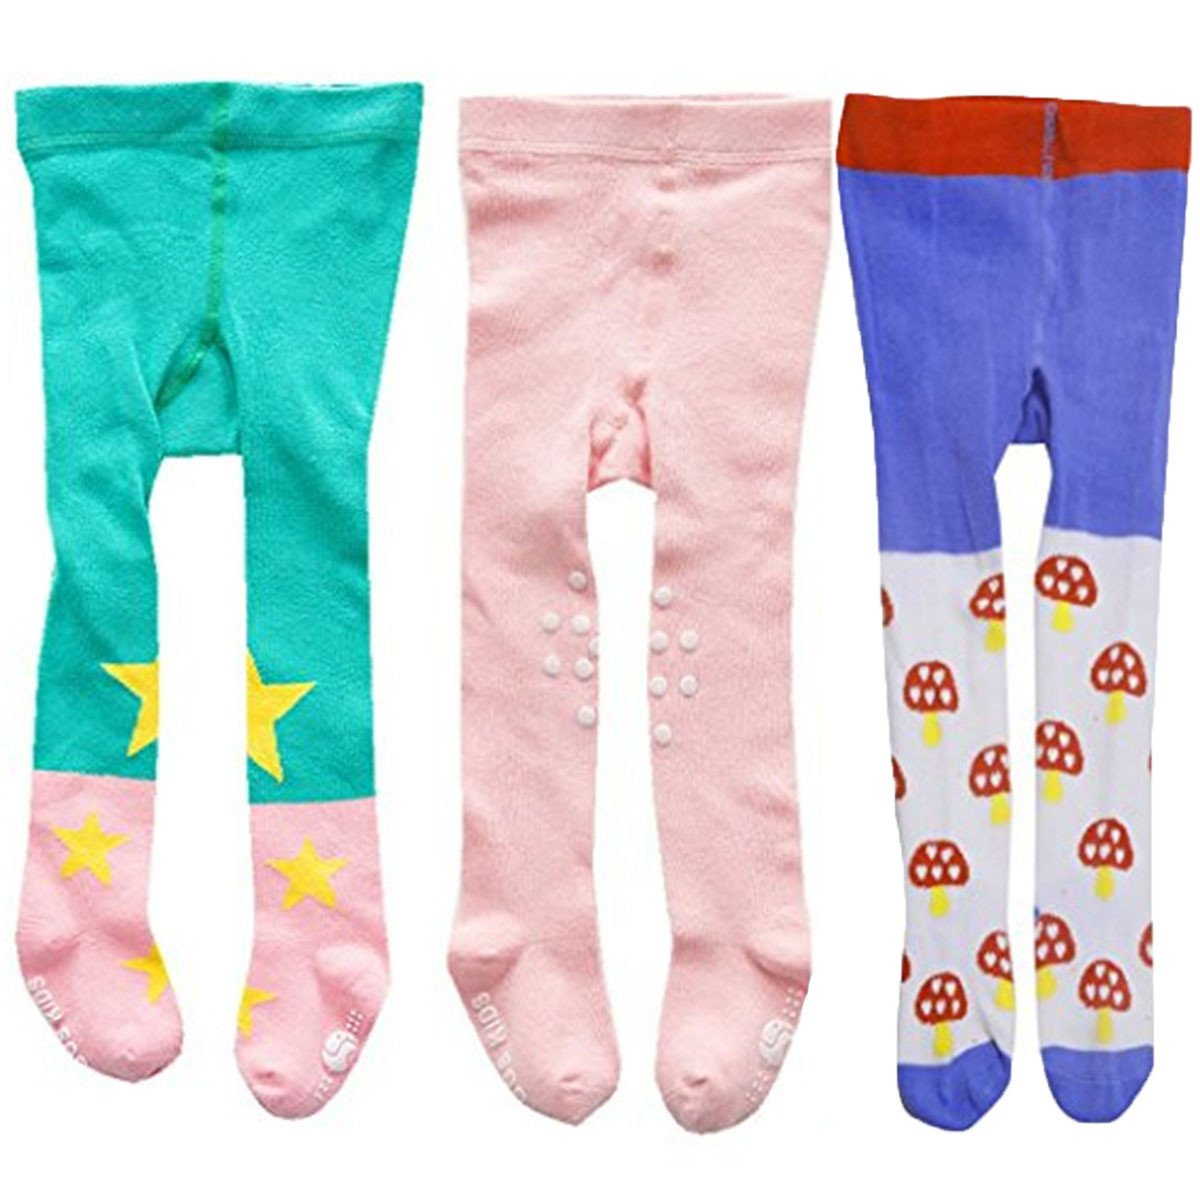 Jeleuon Baby Girls Infant Toddler 3 Pack of Soft Stock Tights Warm Legging Pants 2018tigh-1